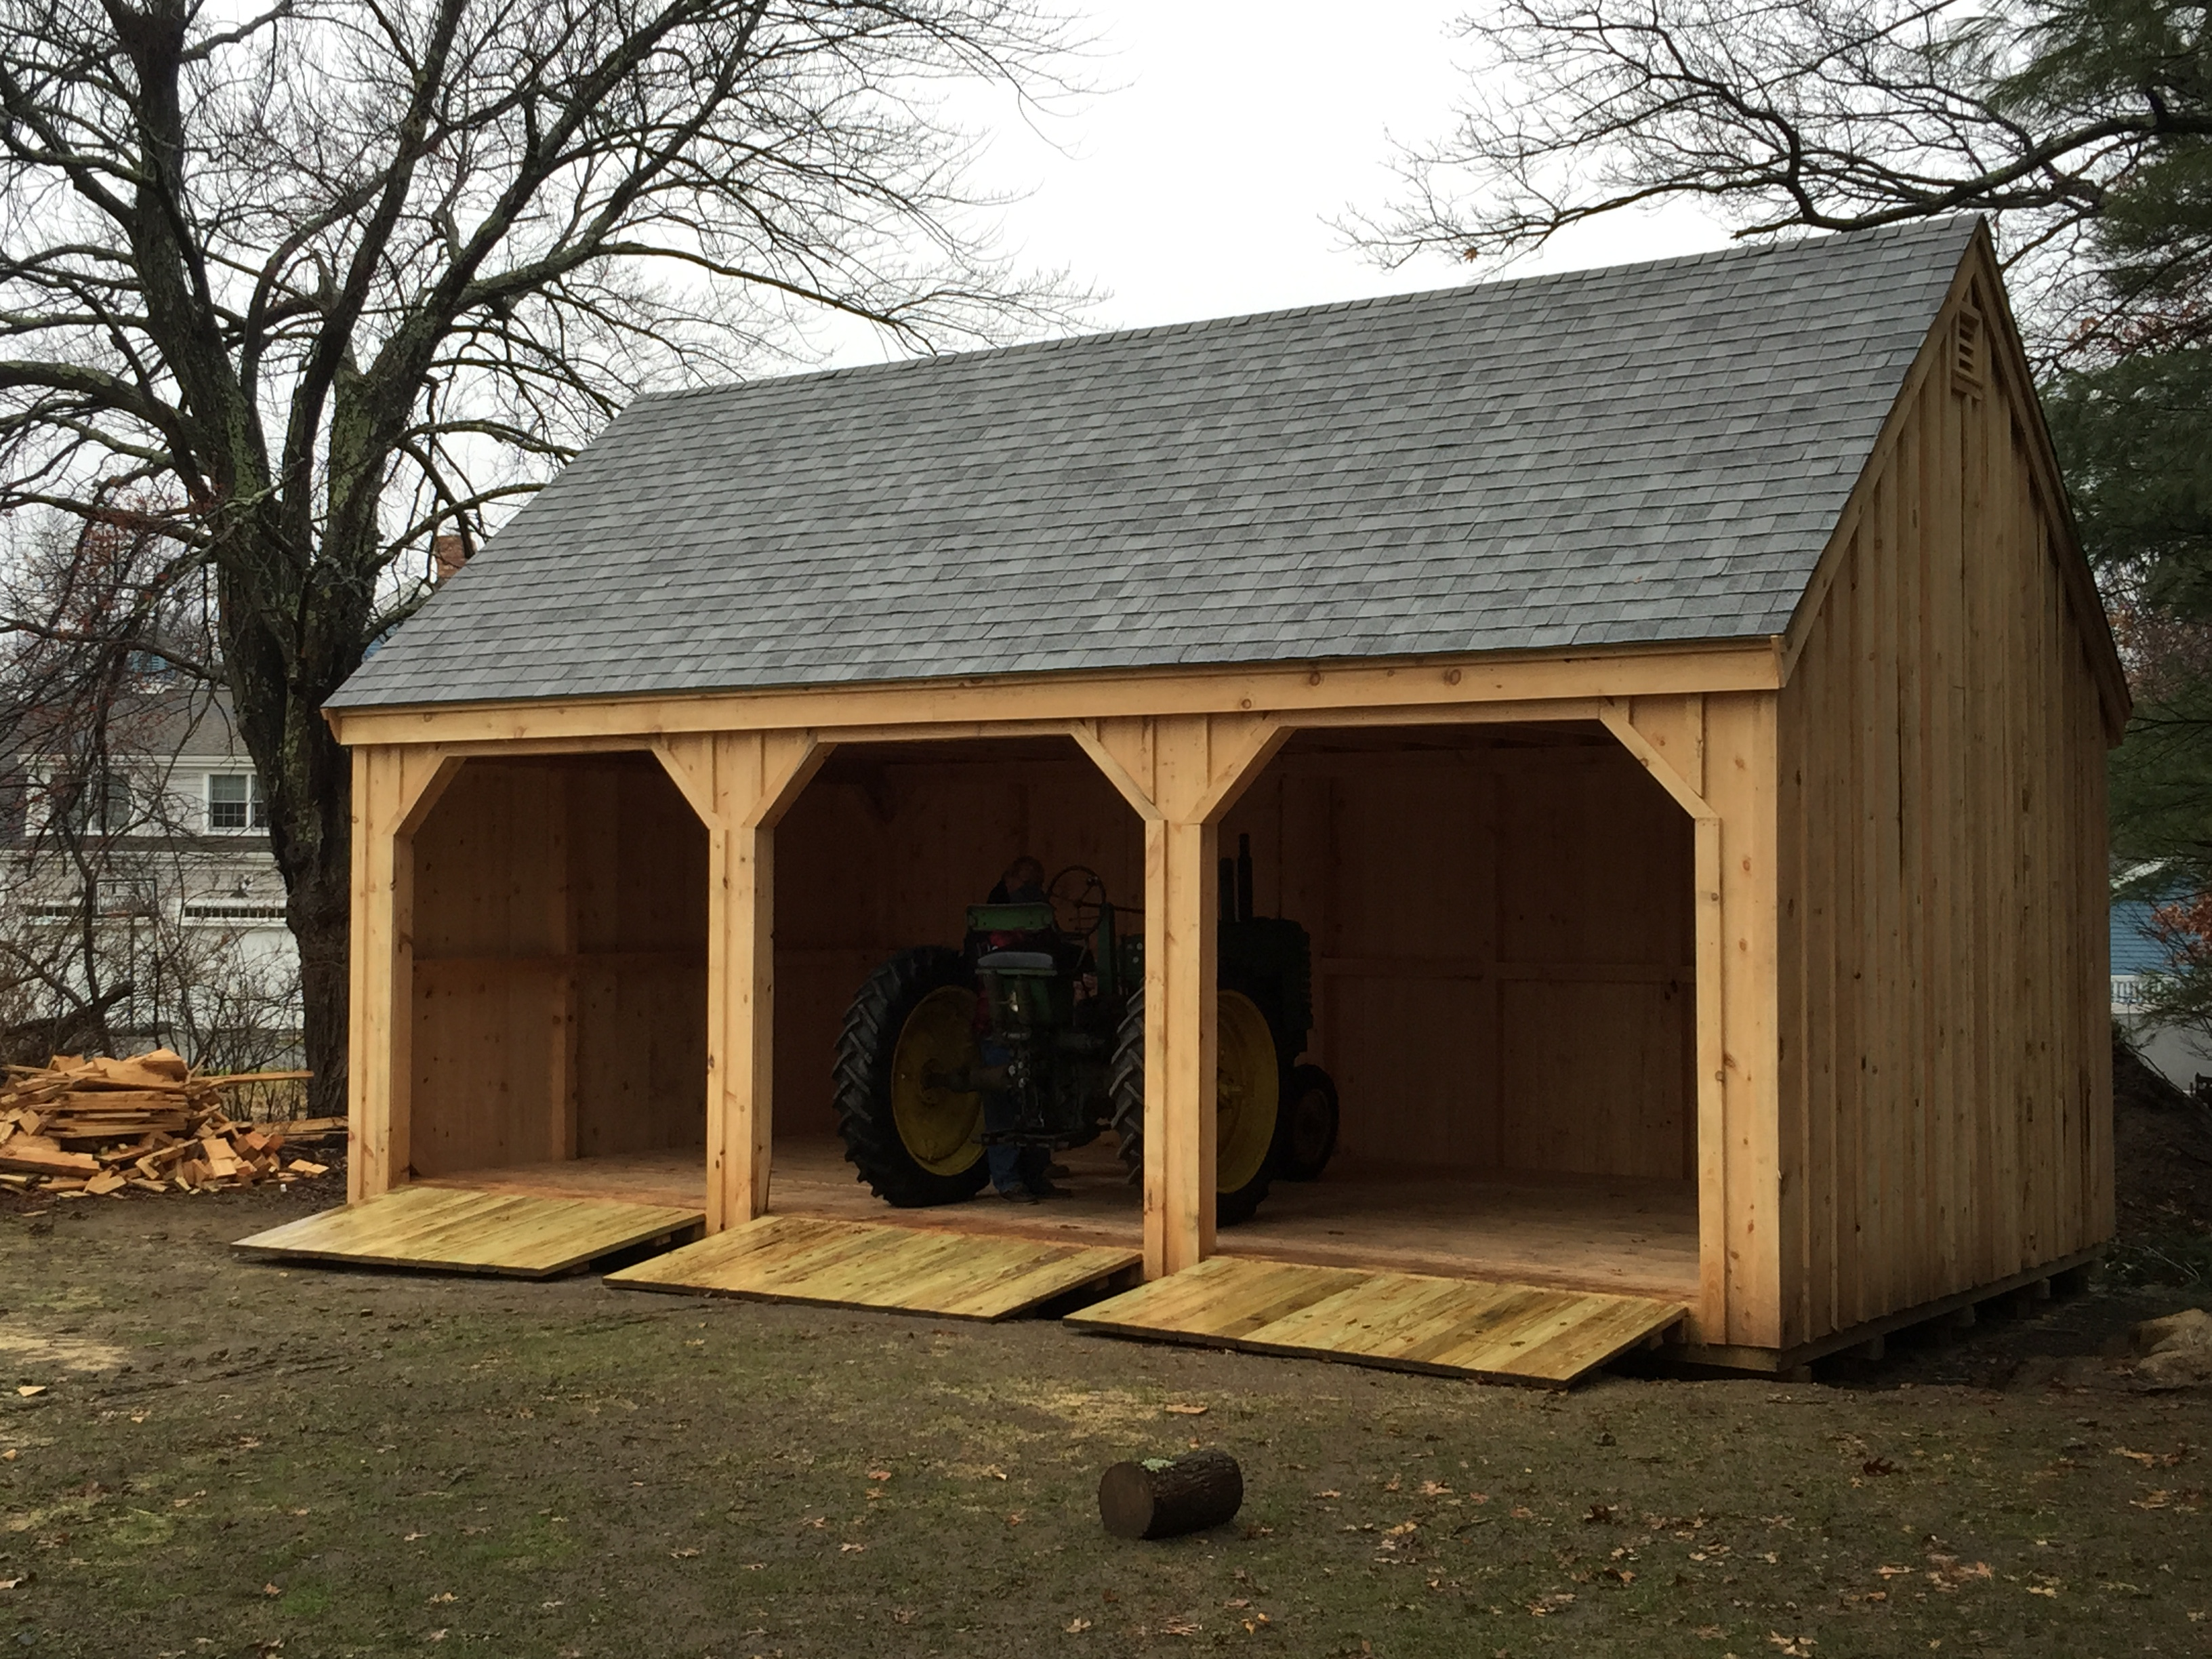 Ponderosa pines wood products kingston massachusetts ma for How to build a tractor shed